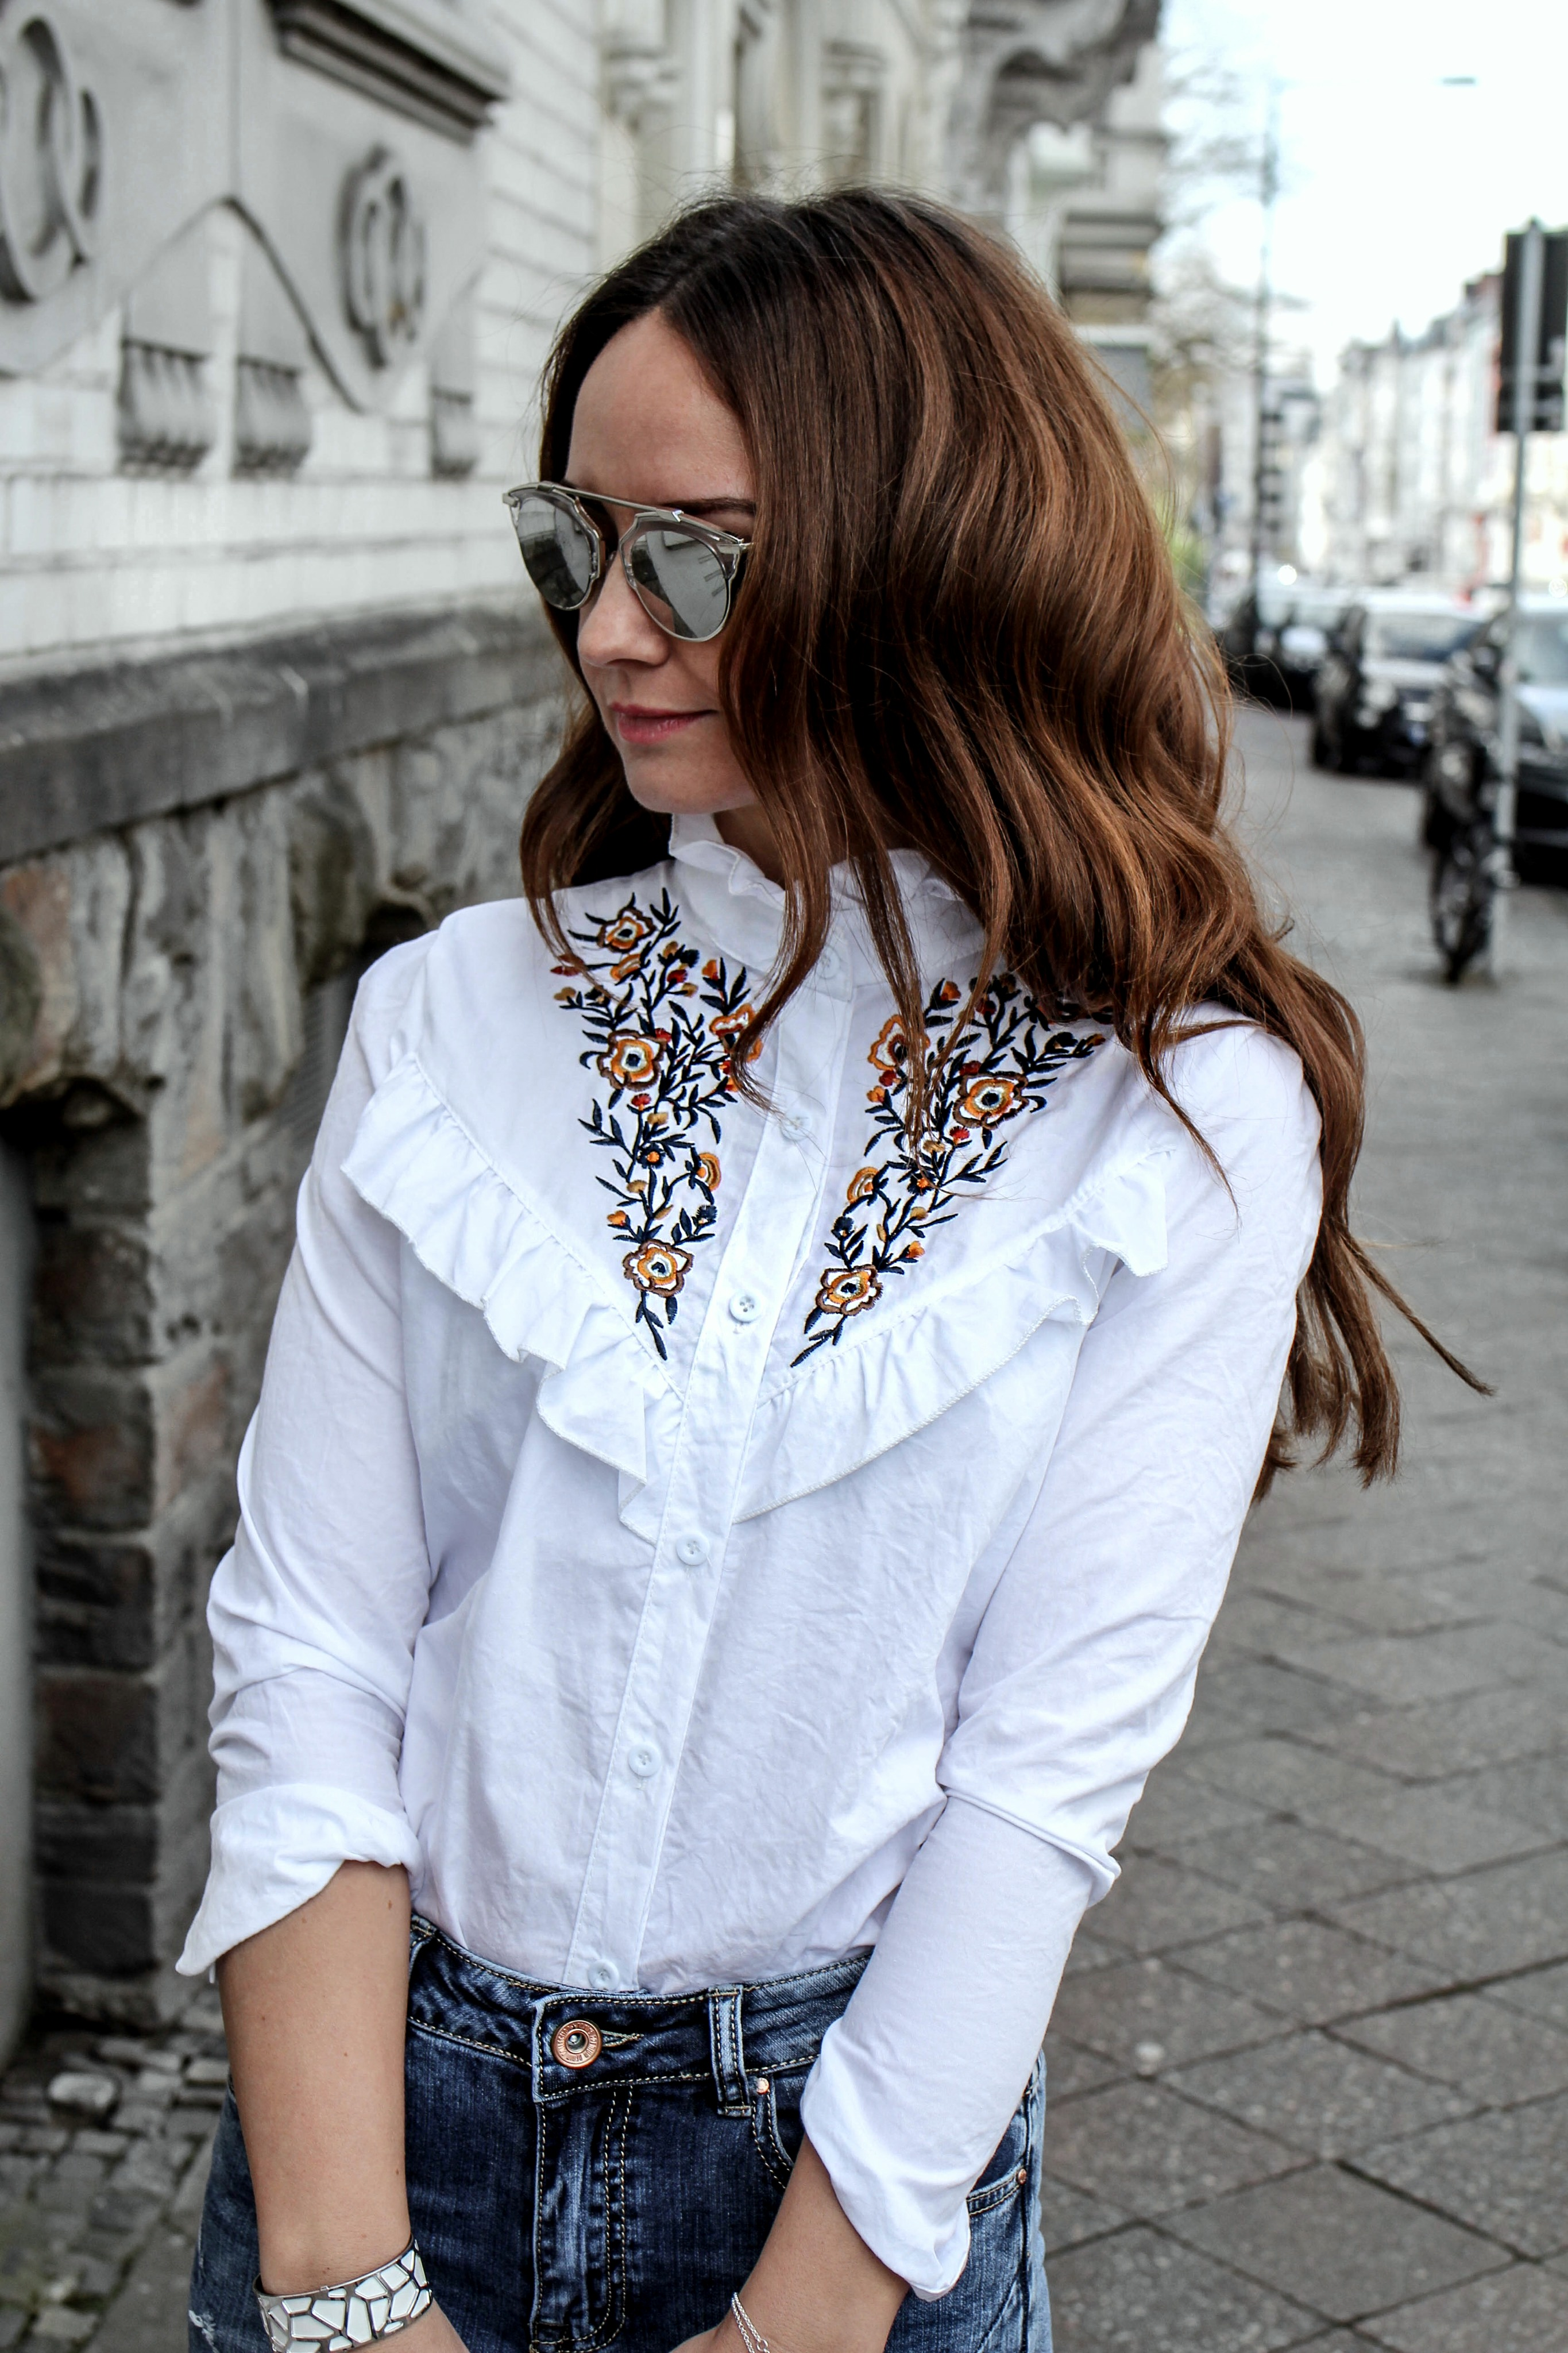 Fashioncircuz by Jenny fashioncircuz_jenny_streetstyle_chicwis_grethe_winter_bluse In Jeans und Bluse durch den Frühling